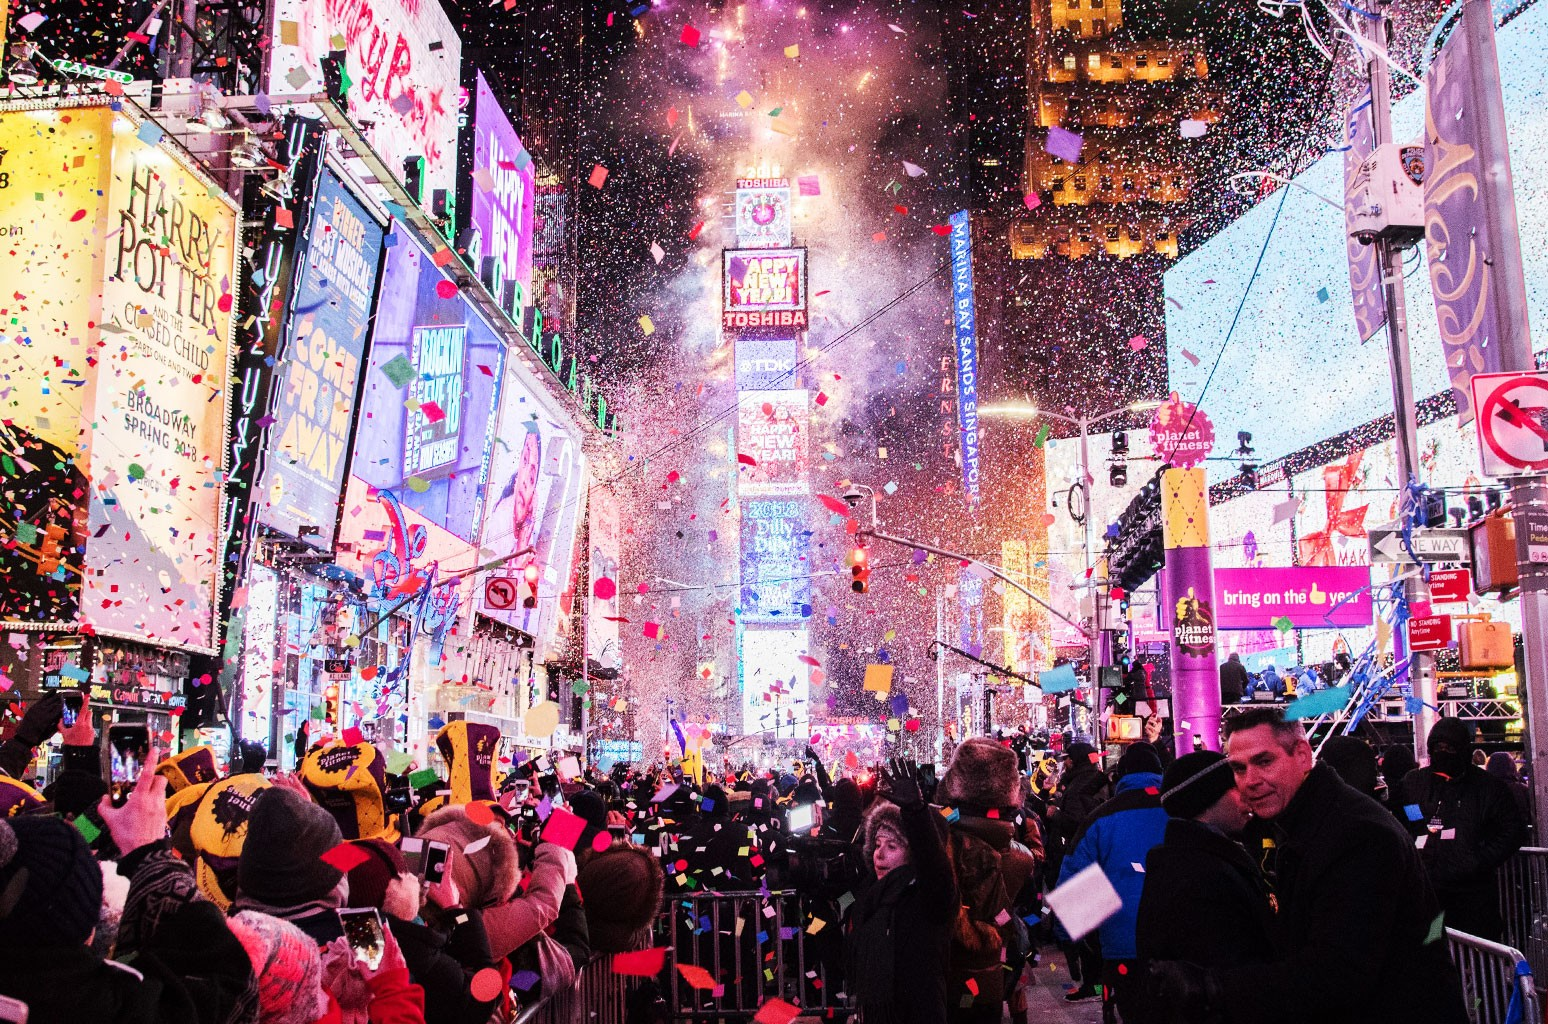 The Times Square New Year's Eve Ball Drop